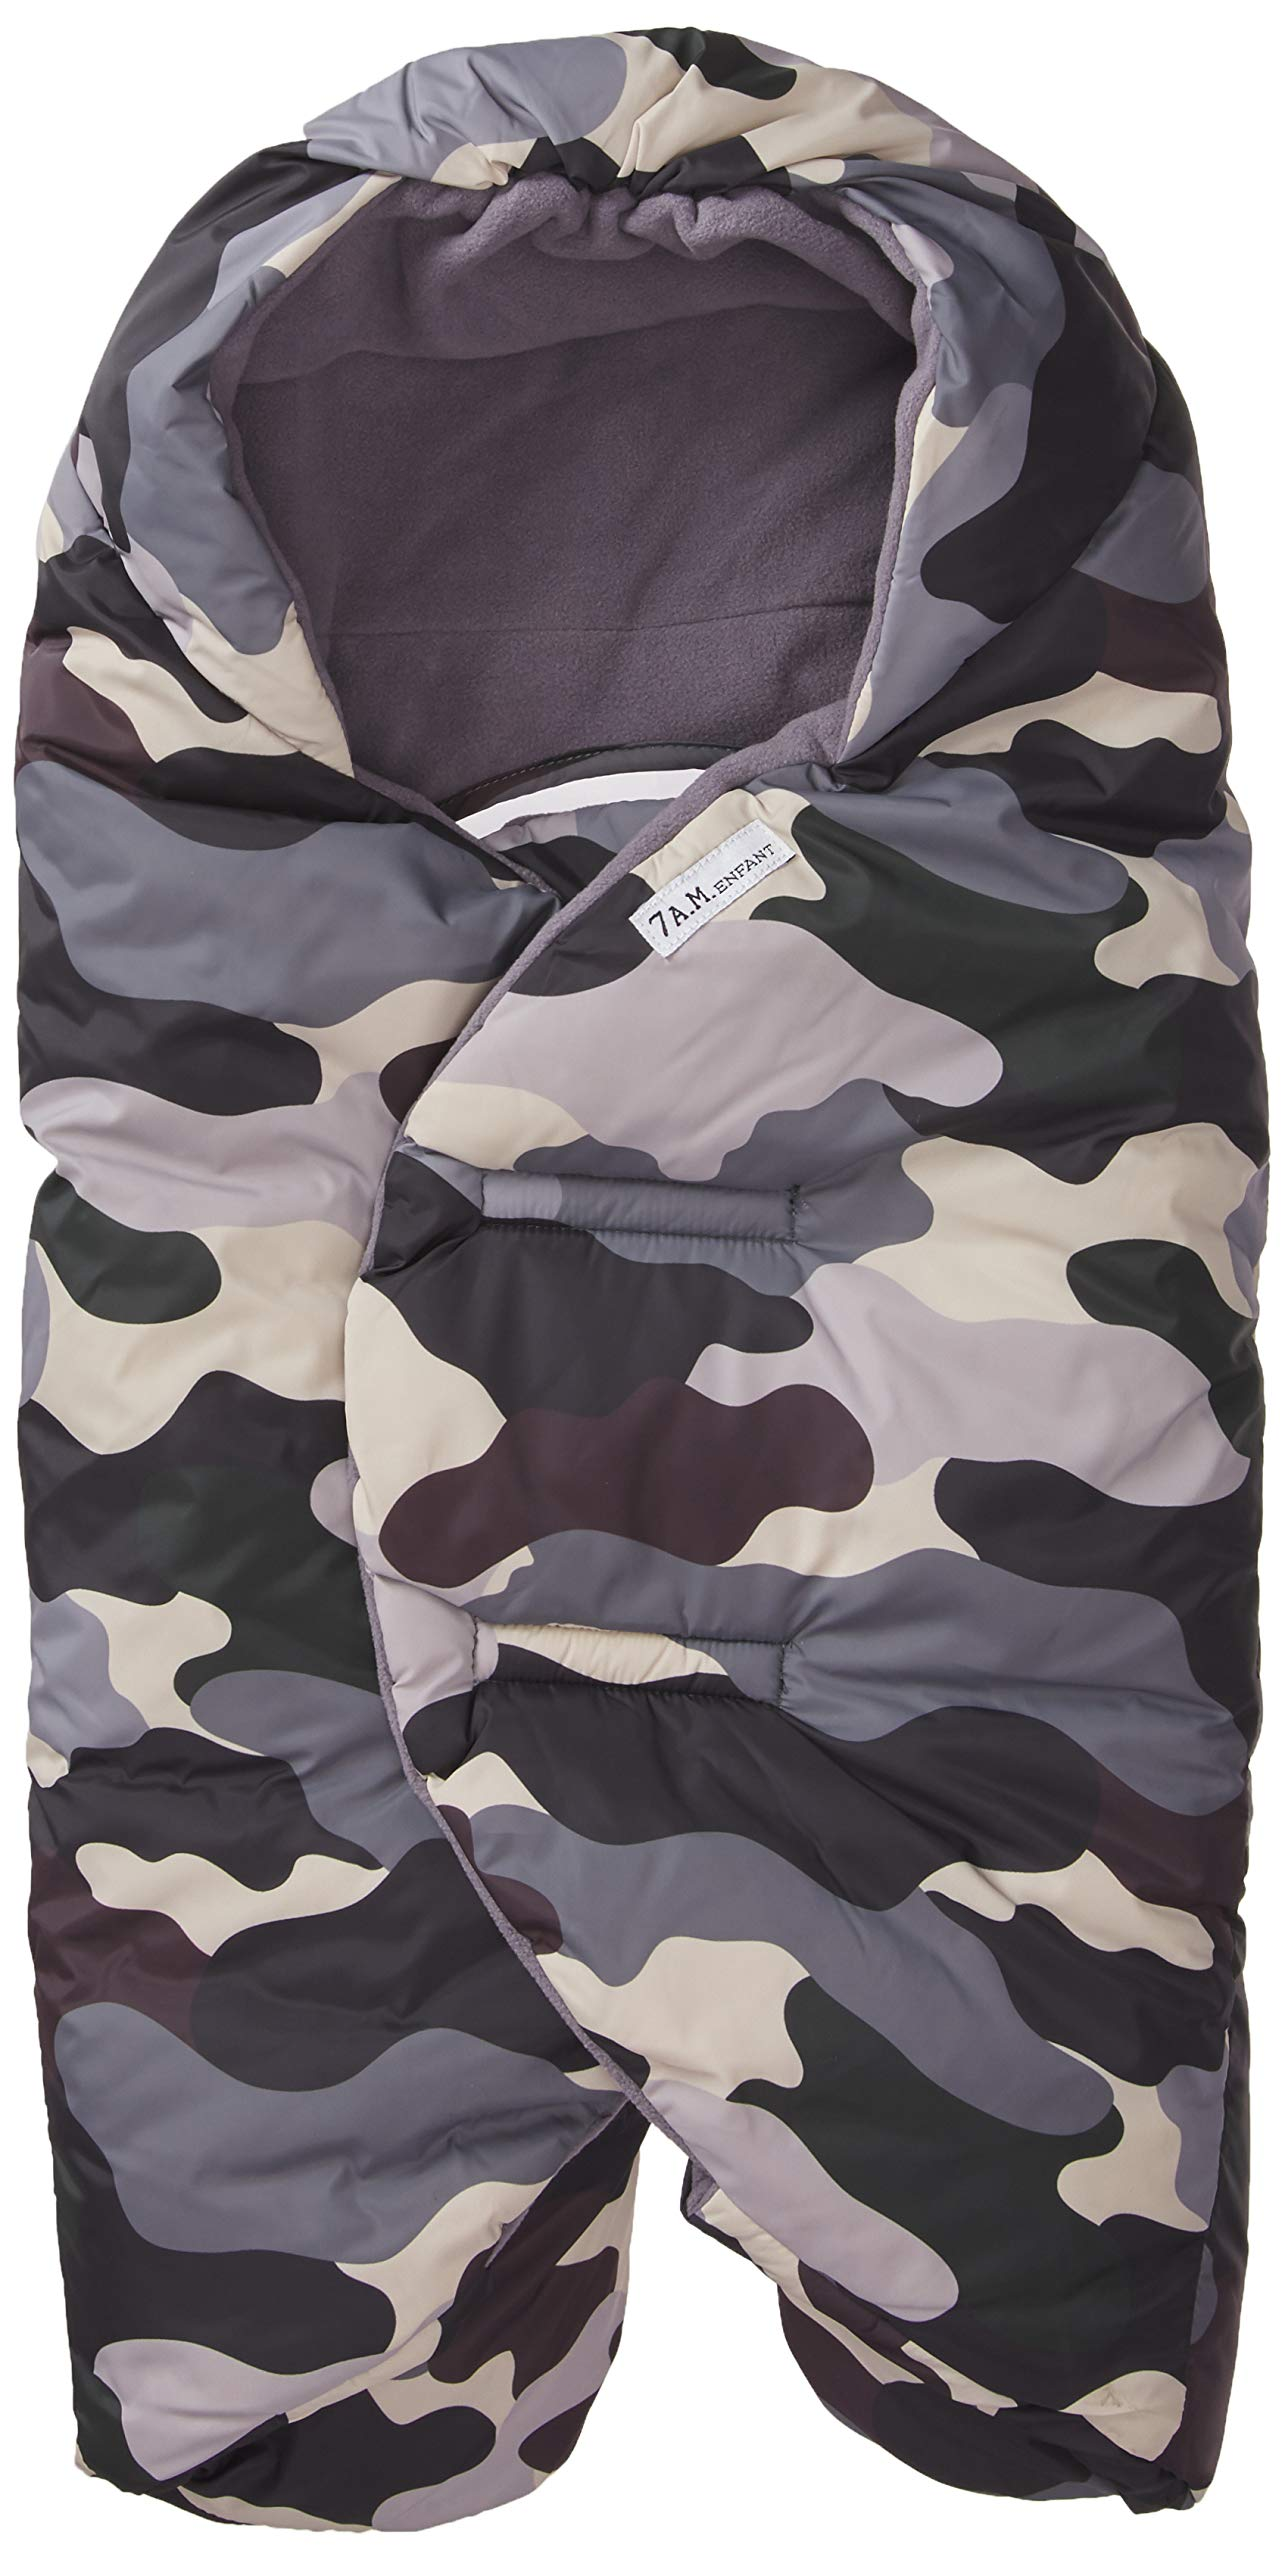 7 A.M. Enfant Nido Quilted, Camo Forest, Small